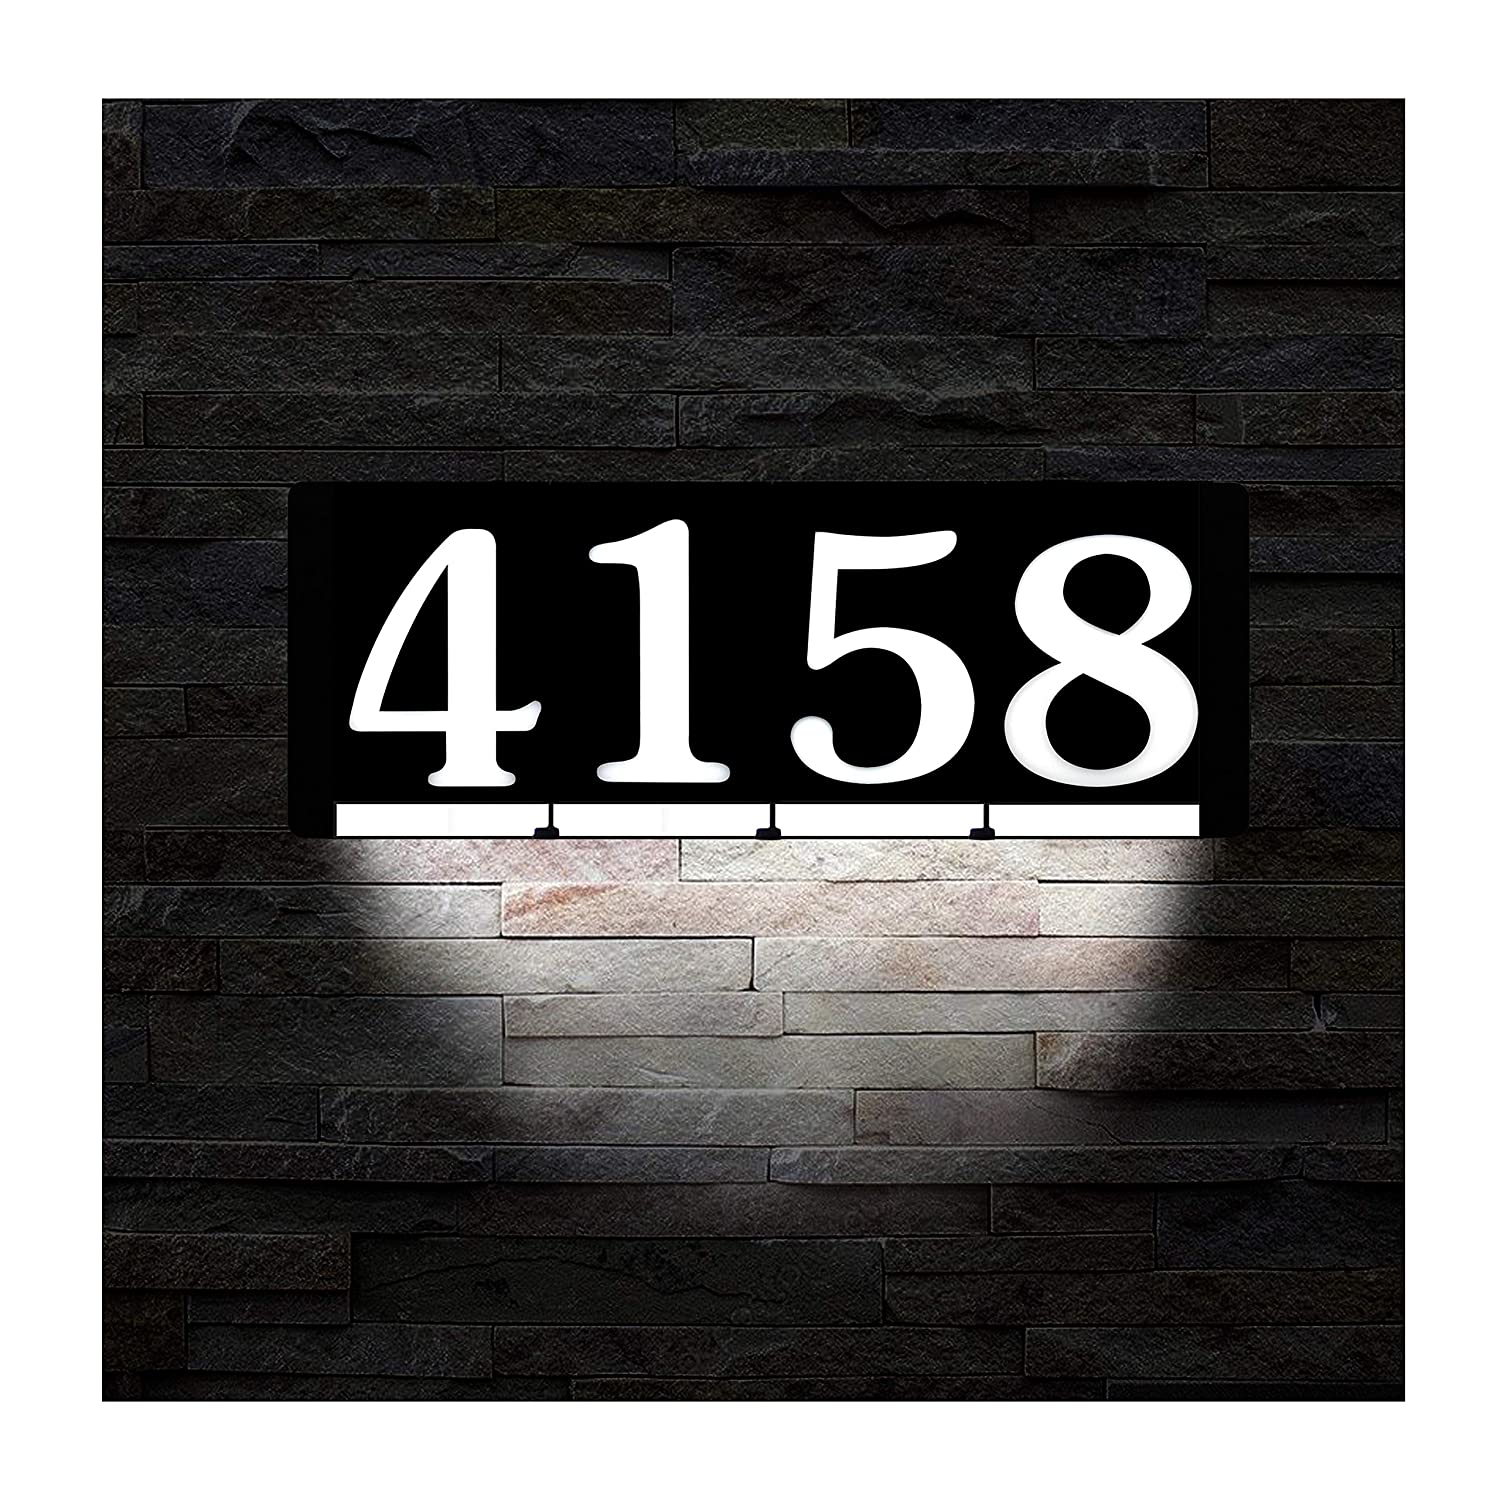 Homidea backlit led house number and sound activated overhead light personalized large black and white modern address number sign custom street number